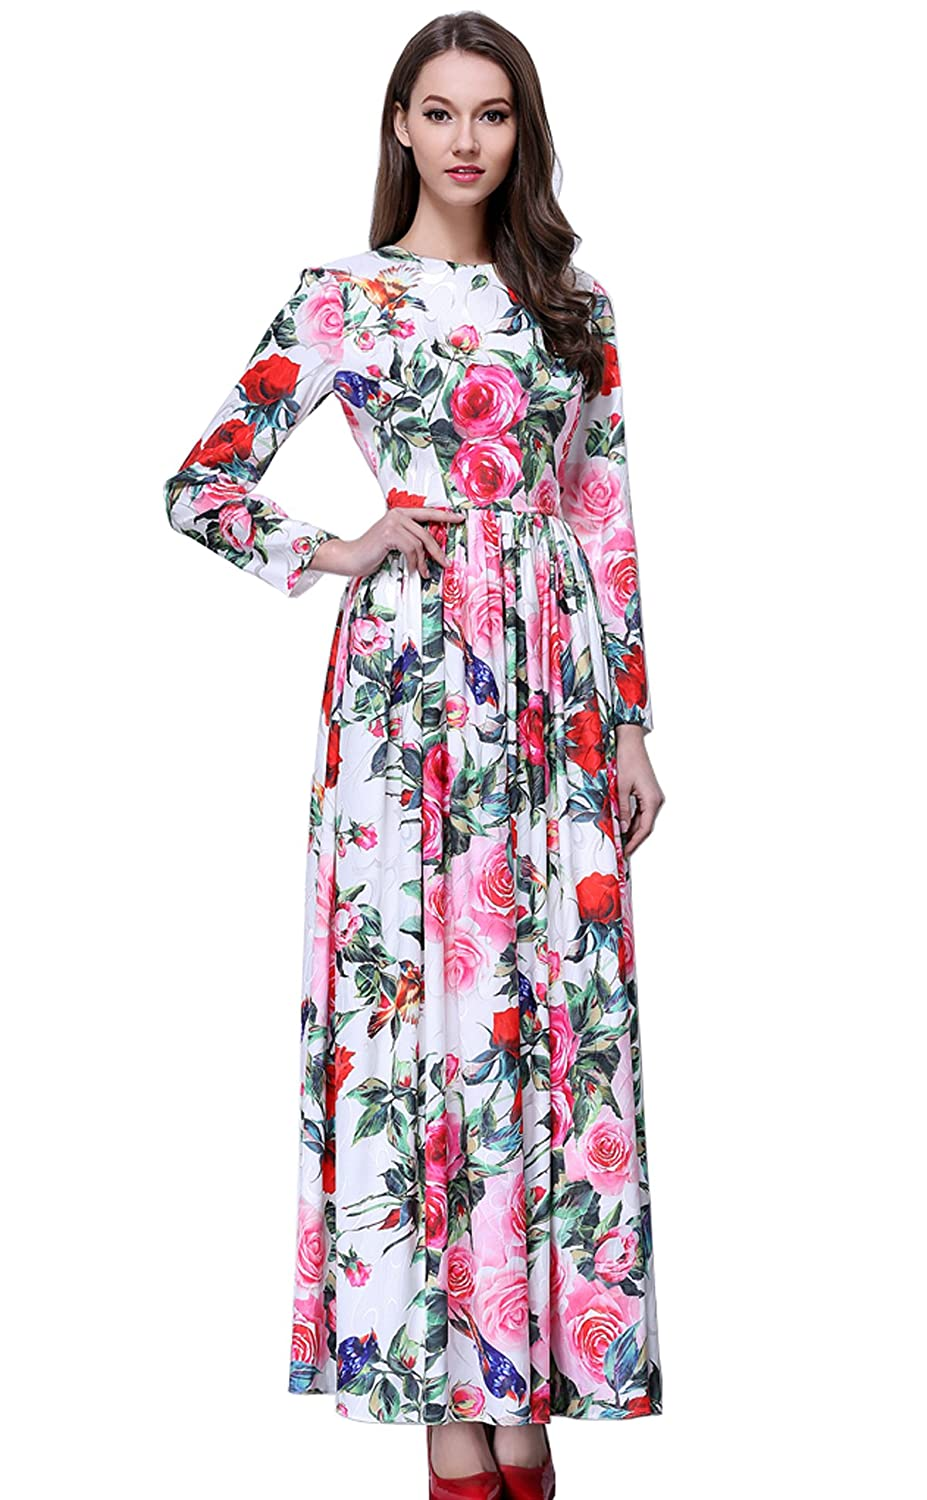 Merope J Womens Maxi Floral Bohemian Long Sleeves Summer Beach Dress